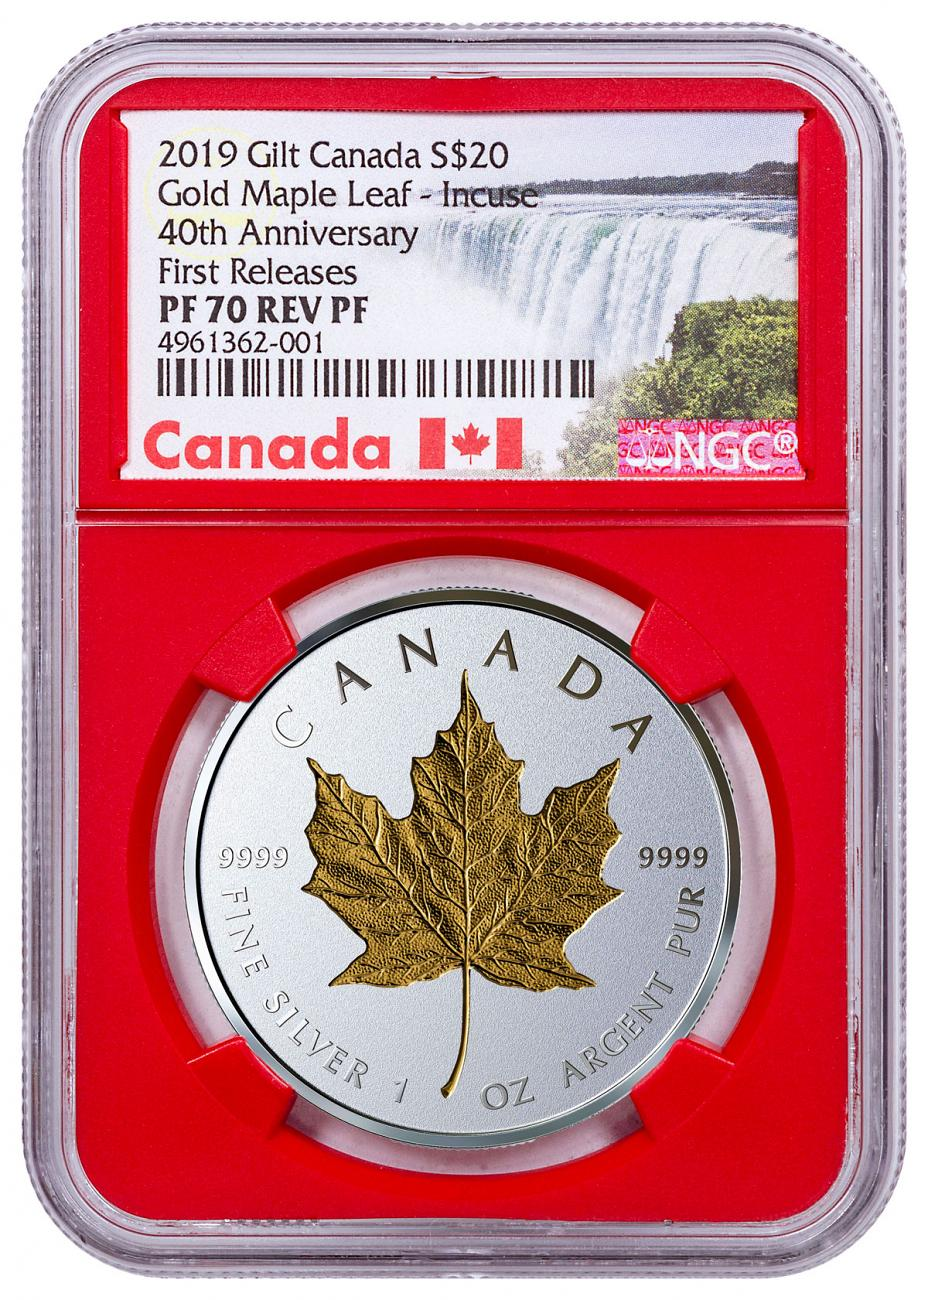 2019 Canada 1 oz Silver Maple Leaf - Incuse Gilt Reverse Proof $20 Coin NGC PF70 FR Red Core Holder Exclusive Canada Label